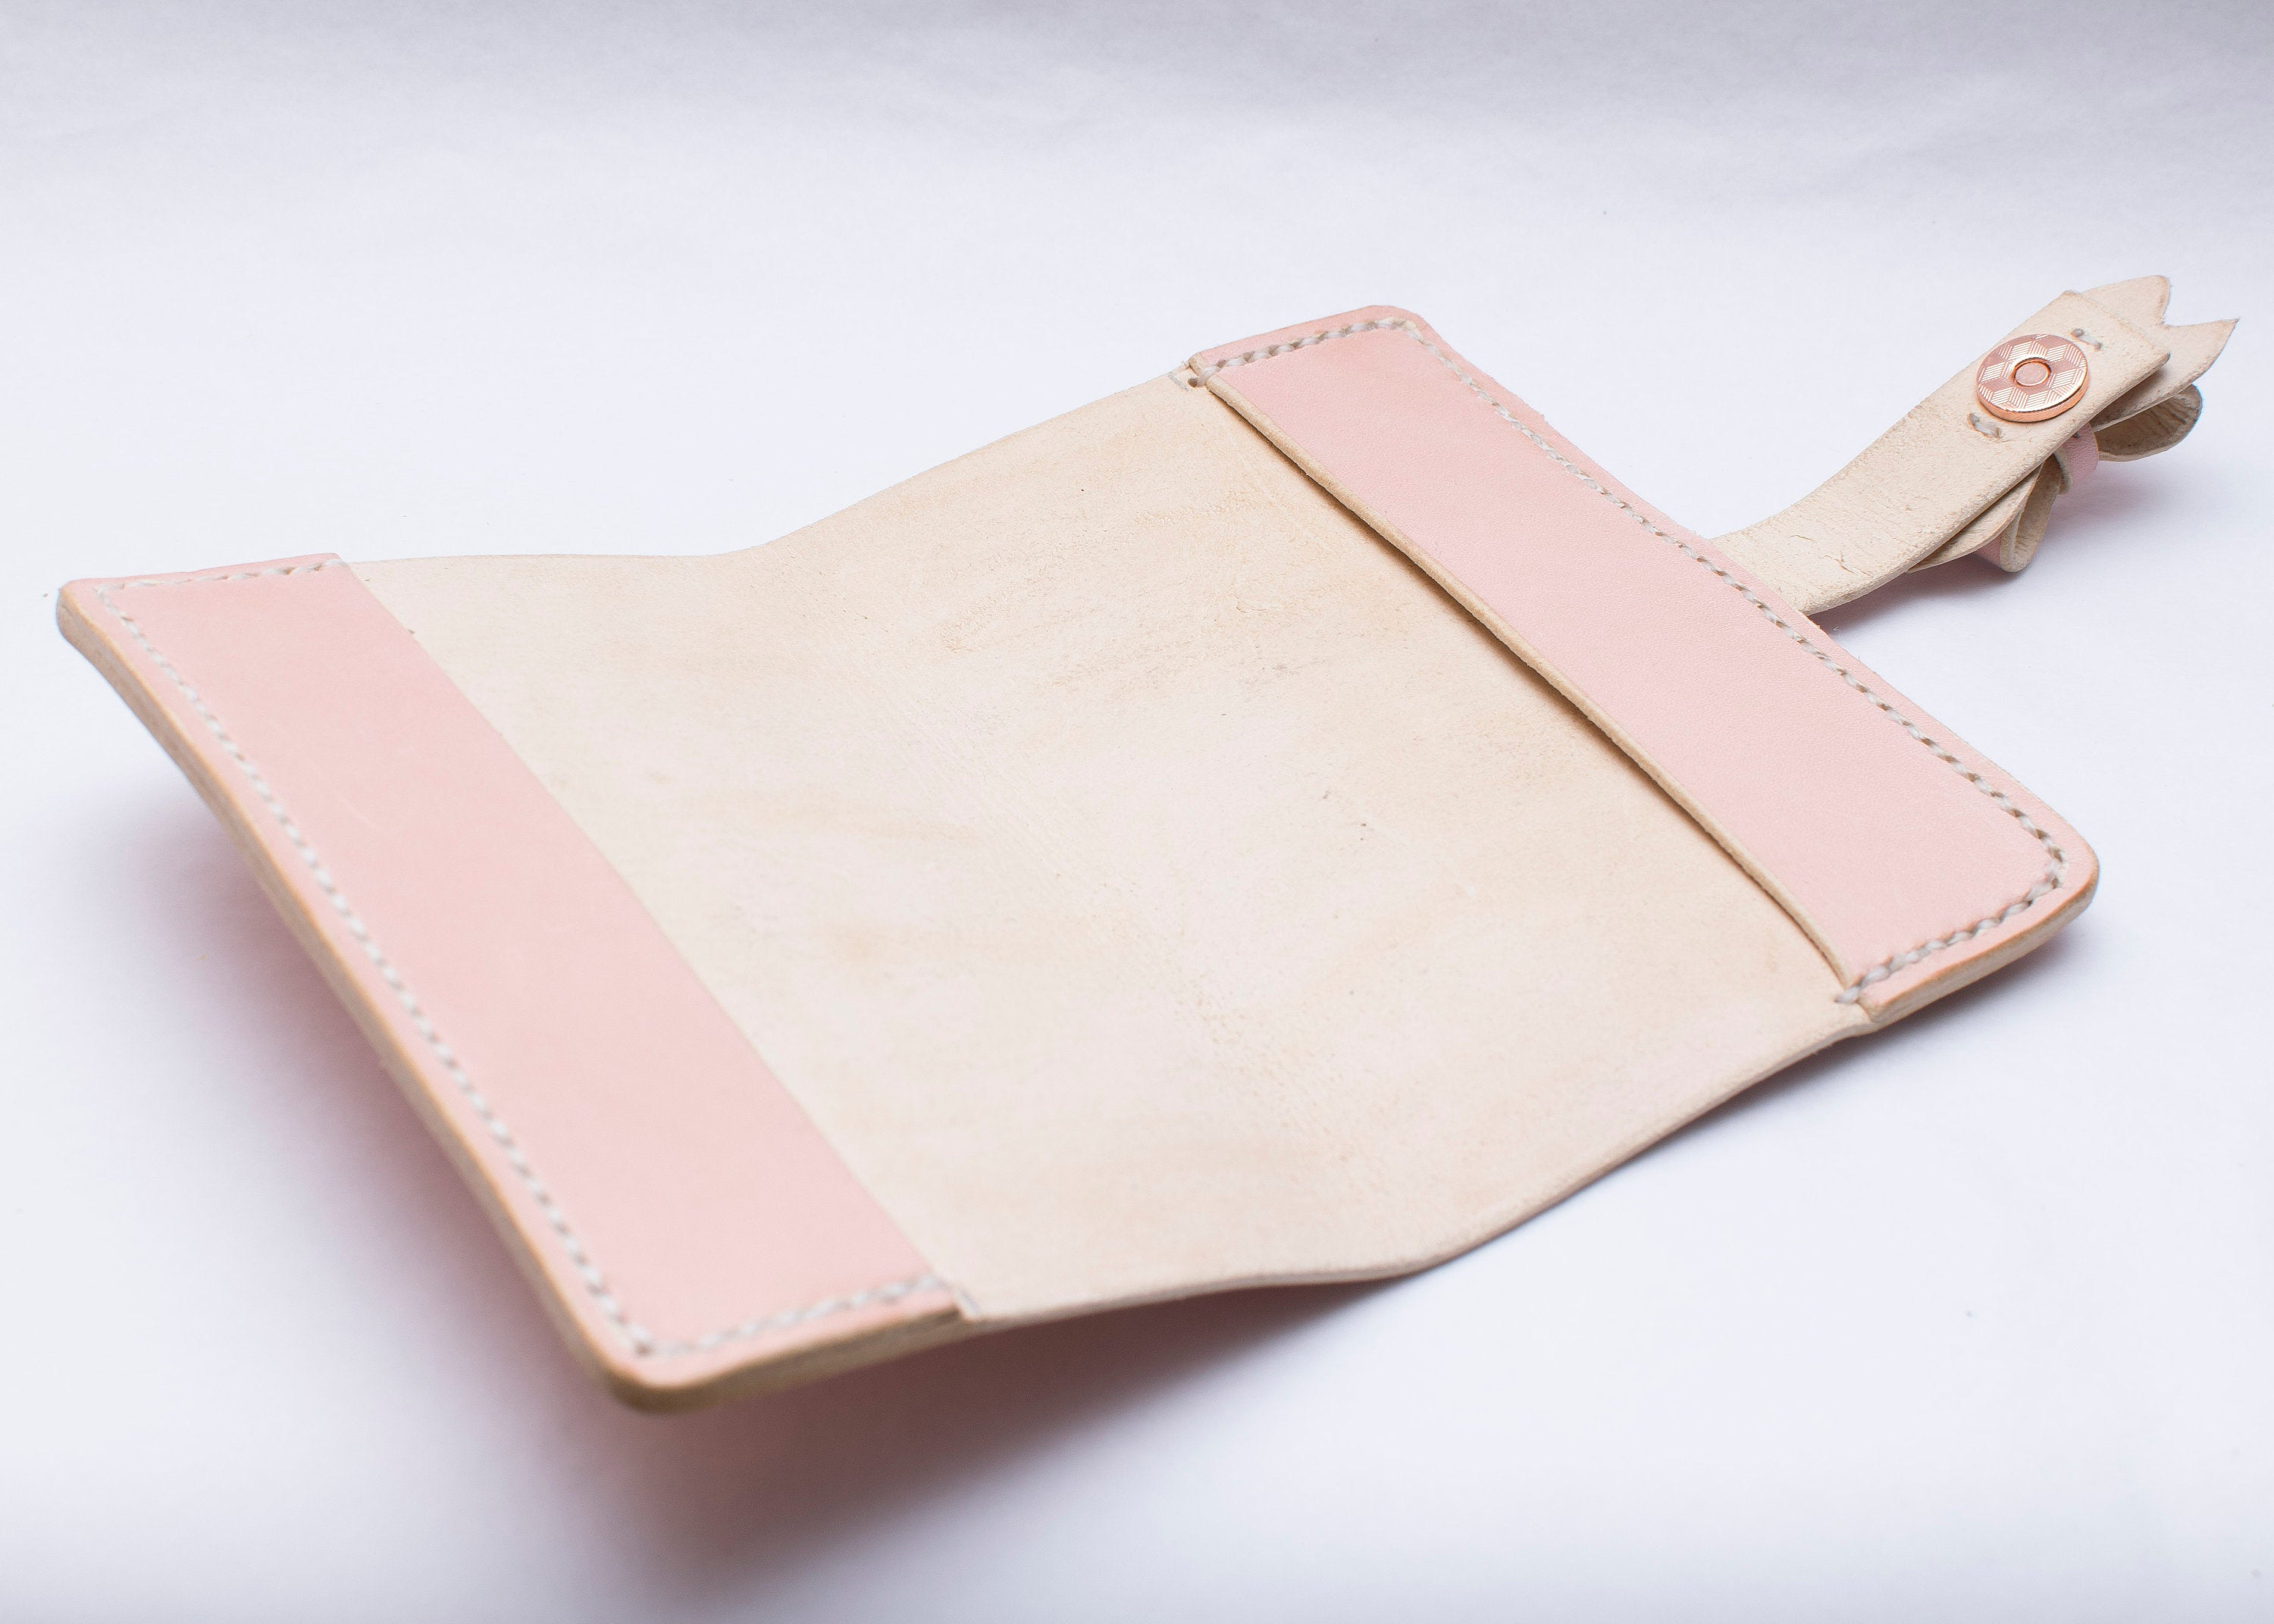 Passport Cover with Bow Fastening and Luggage Tag - Any Colour